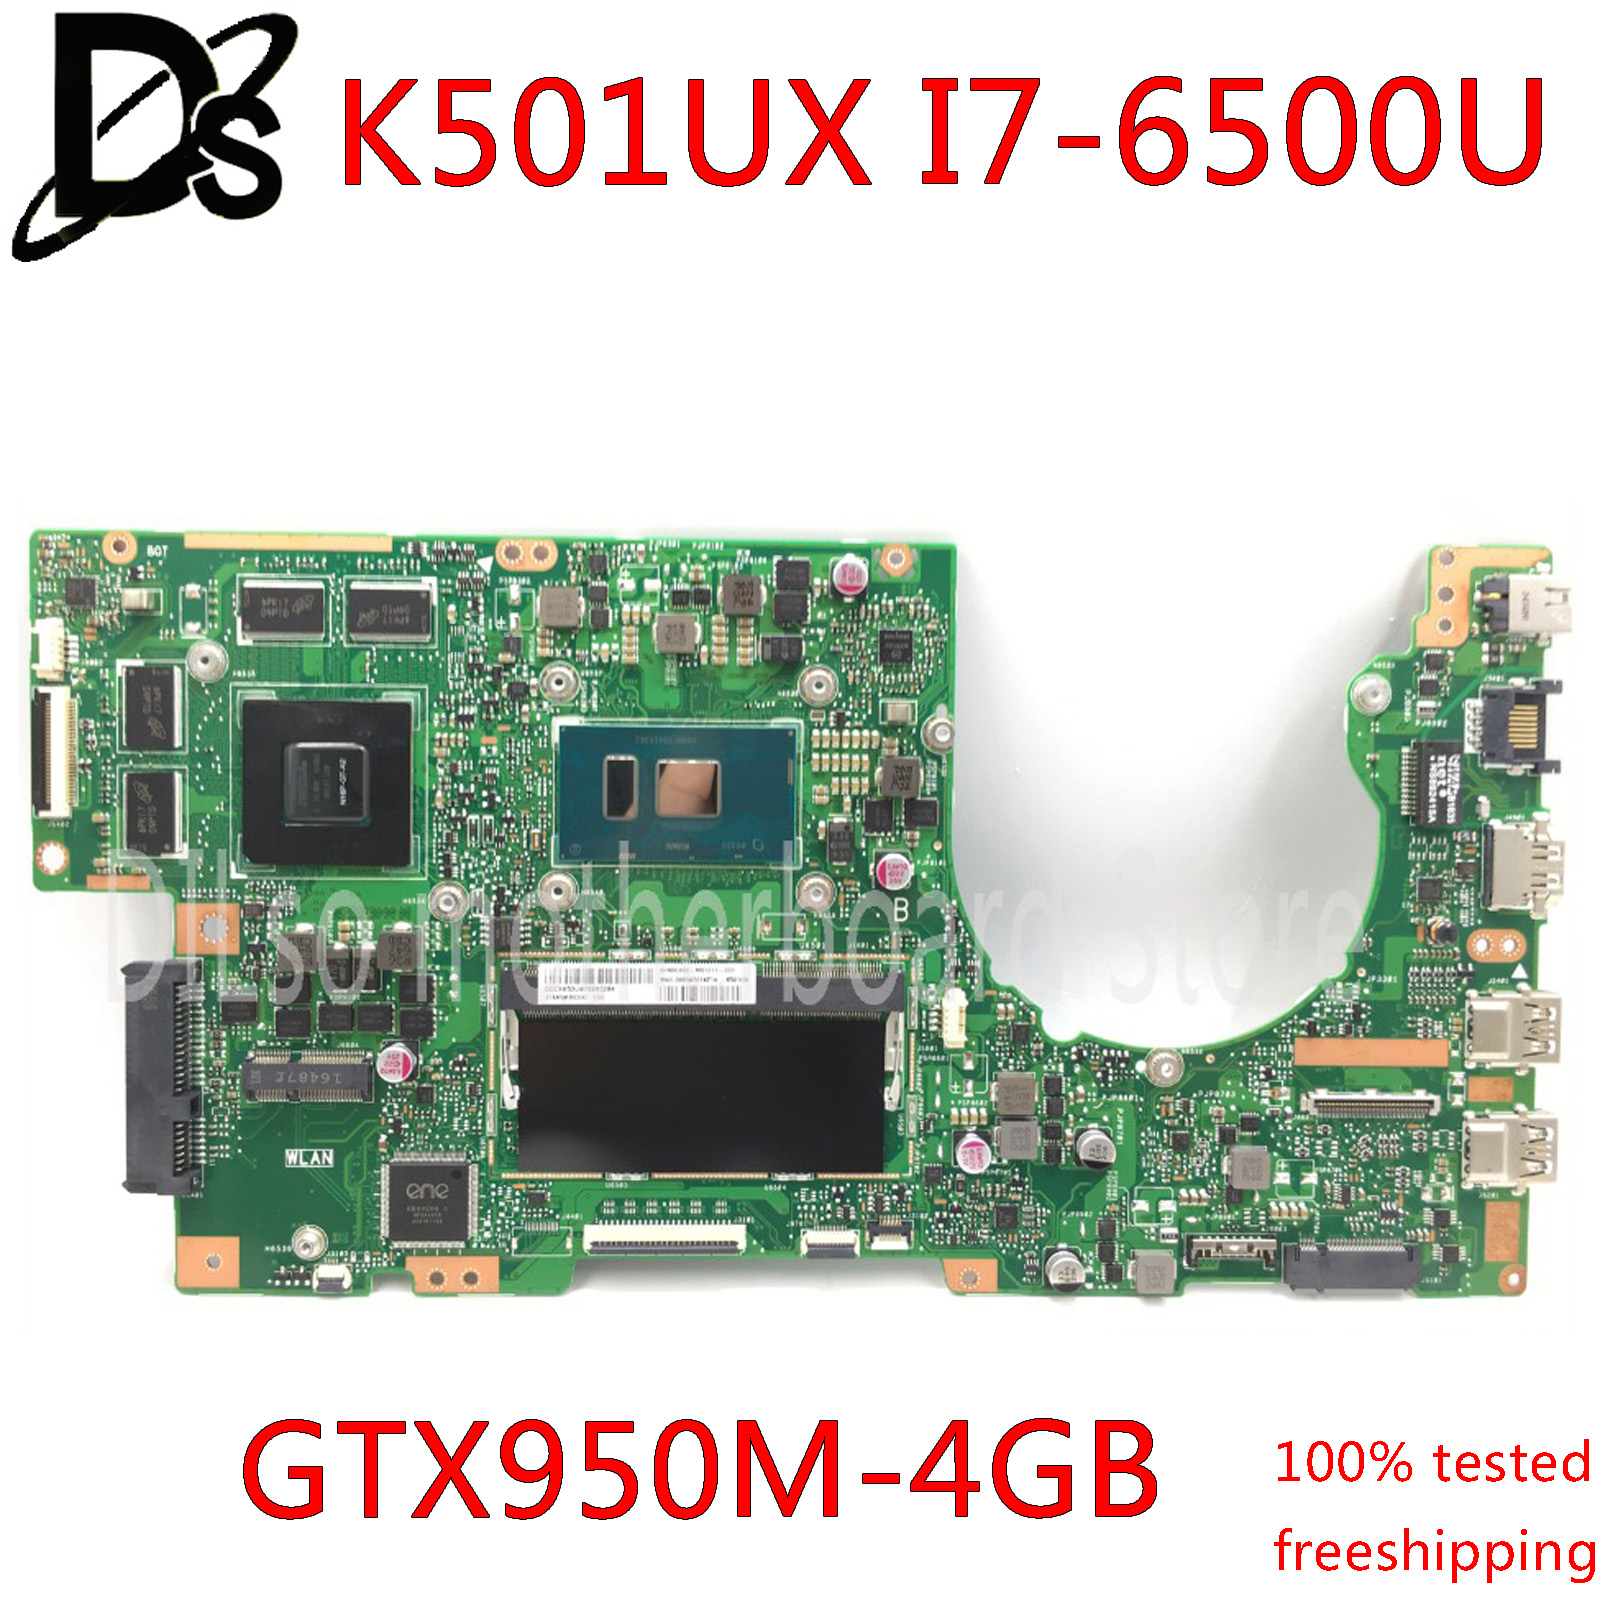 KEFU K501UX For ASUS K501UX K501UB K501U Laptop Motherboard K501UX Mainboard Rev2.0 I7-6500U Cpu GTX 950M 4GB RAM Tested 100%